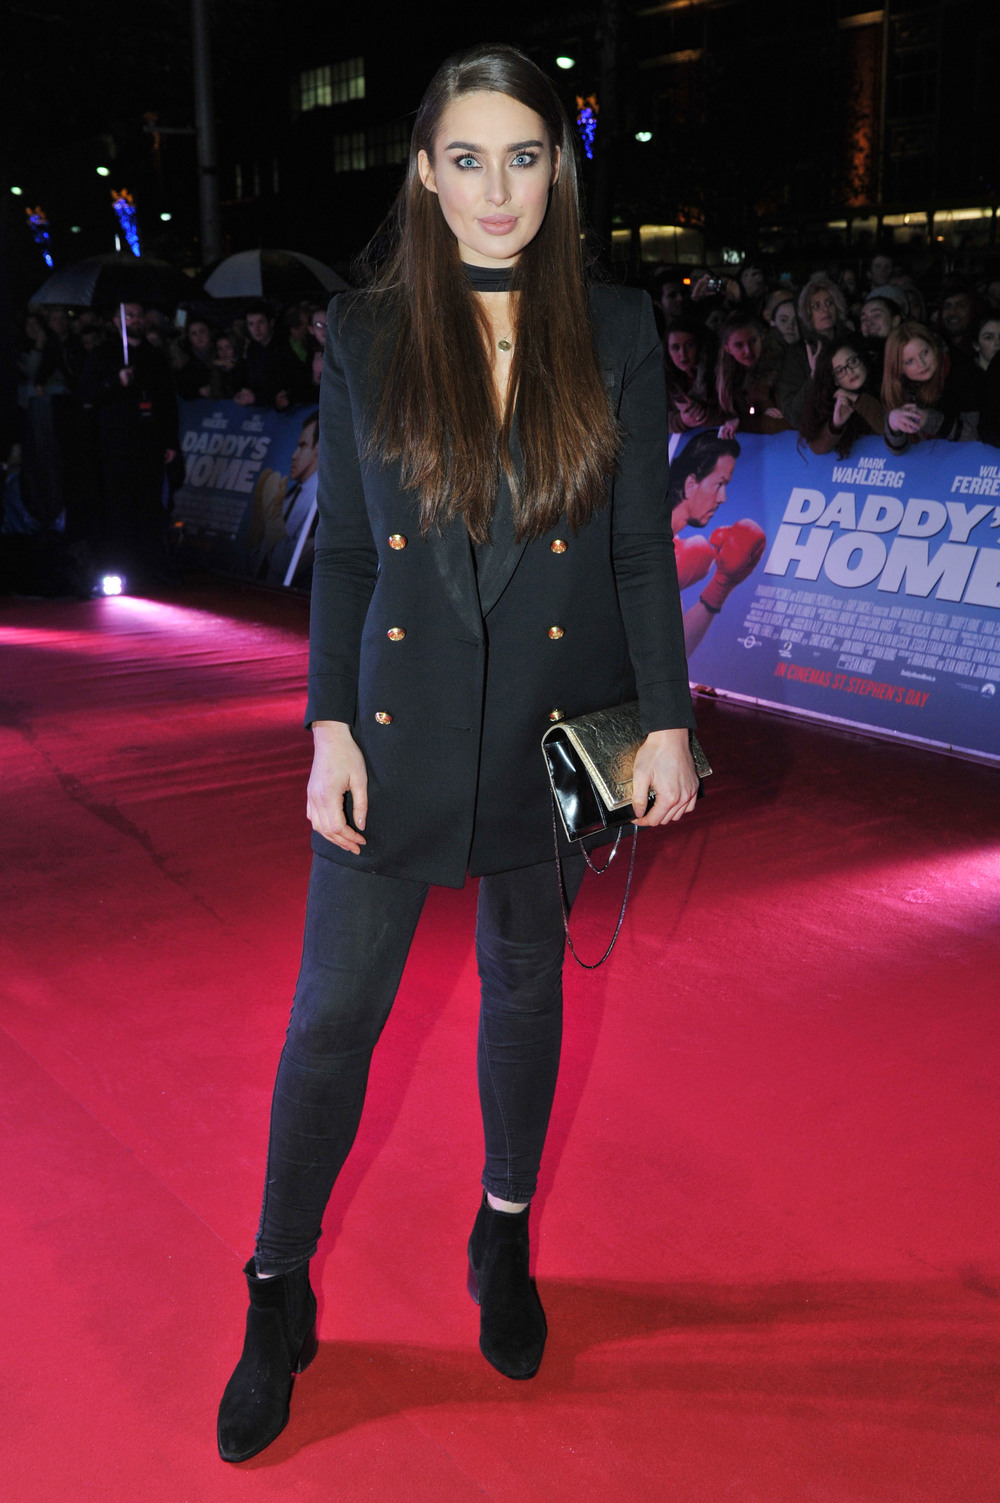 DUBLIN, IRELAND - DECEMBER 7: Irish model Rozanna Purcell attends the Dublin Premiere of 'Daddy's Home' at the Savoy Cinema on December 7, 2015 in Dublin, Ireland. (Photo by Clodagh Kilcoyne /Getty Images for Paramount Pictures)